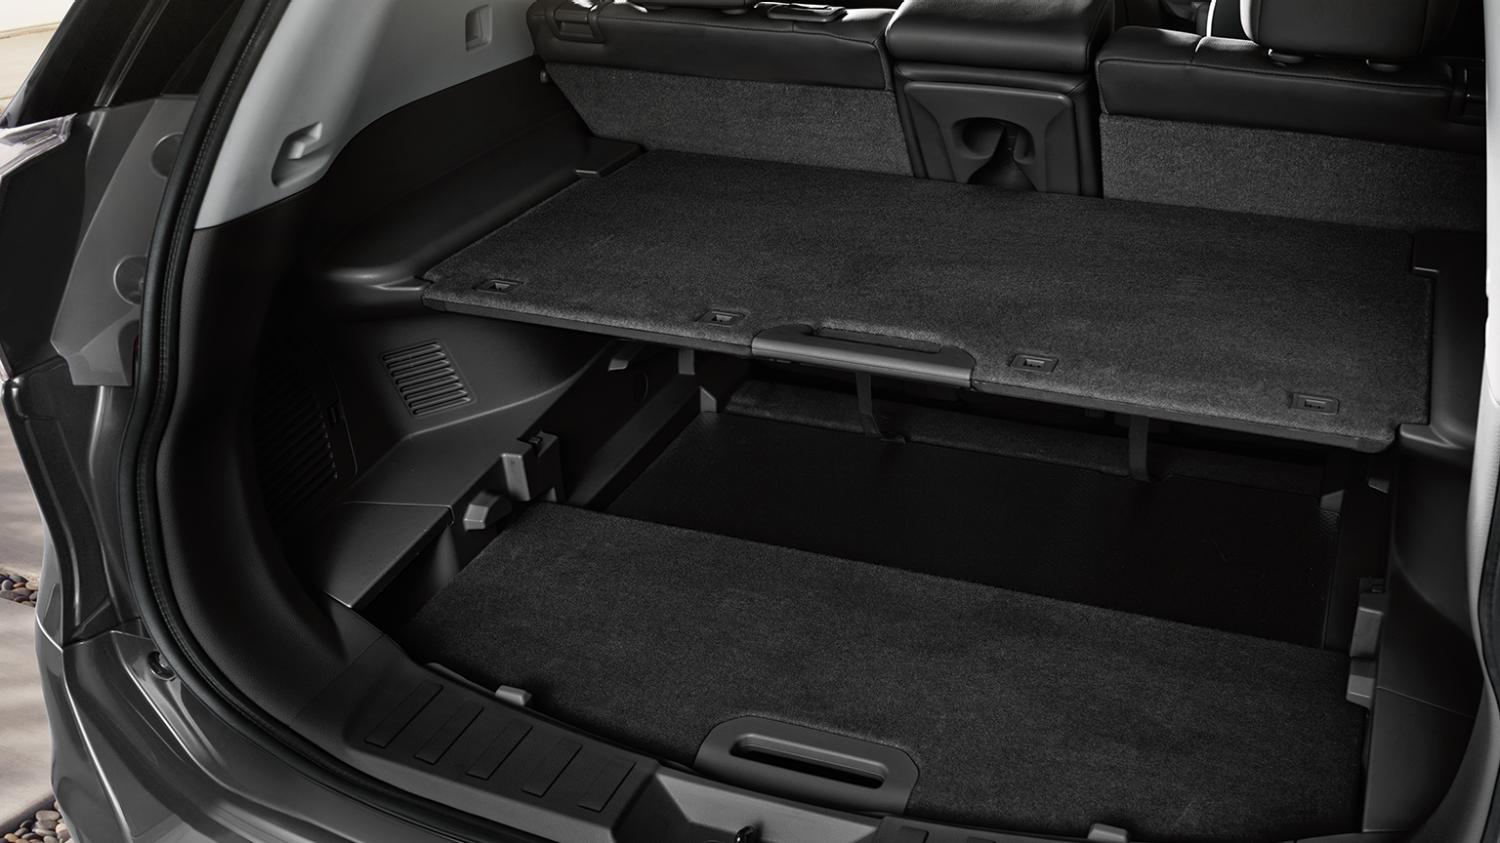 Nissan X-Trail | Layered storage space